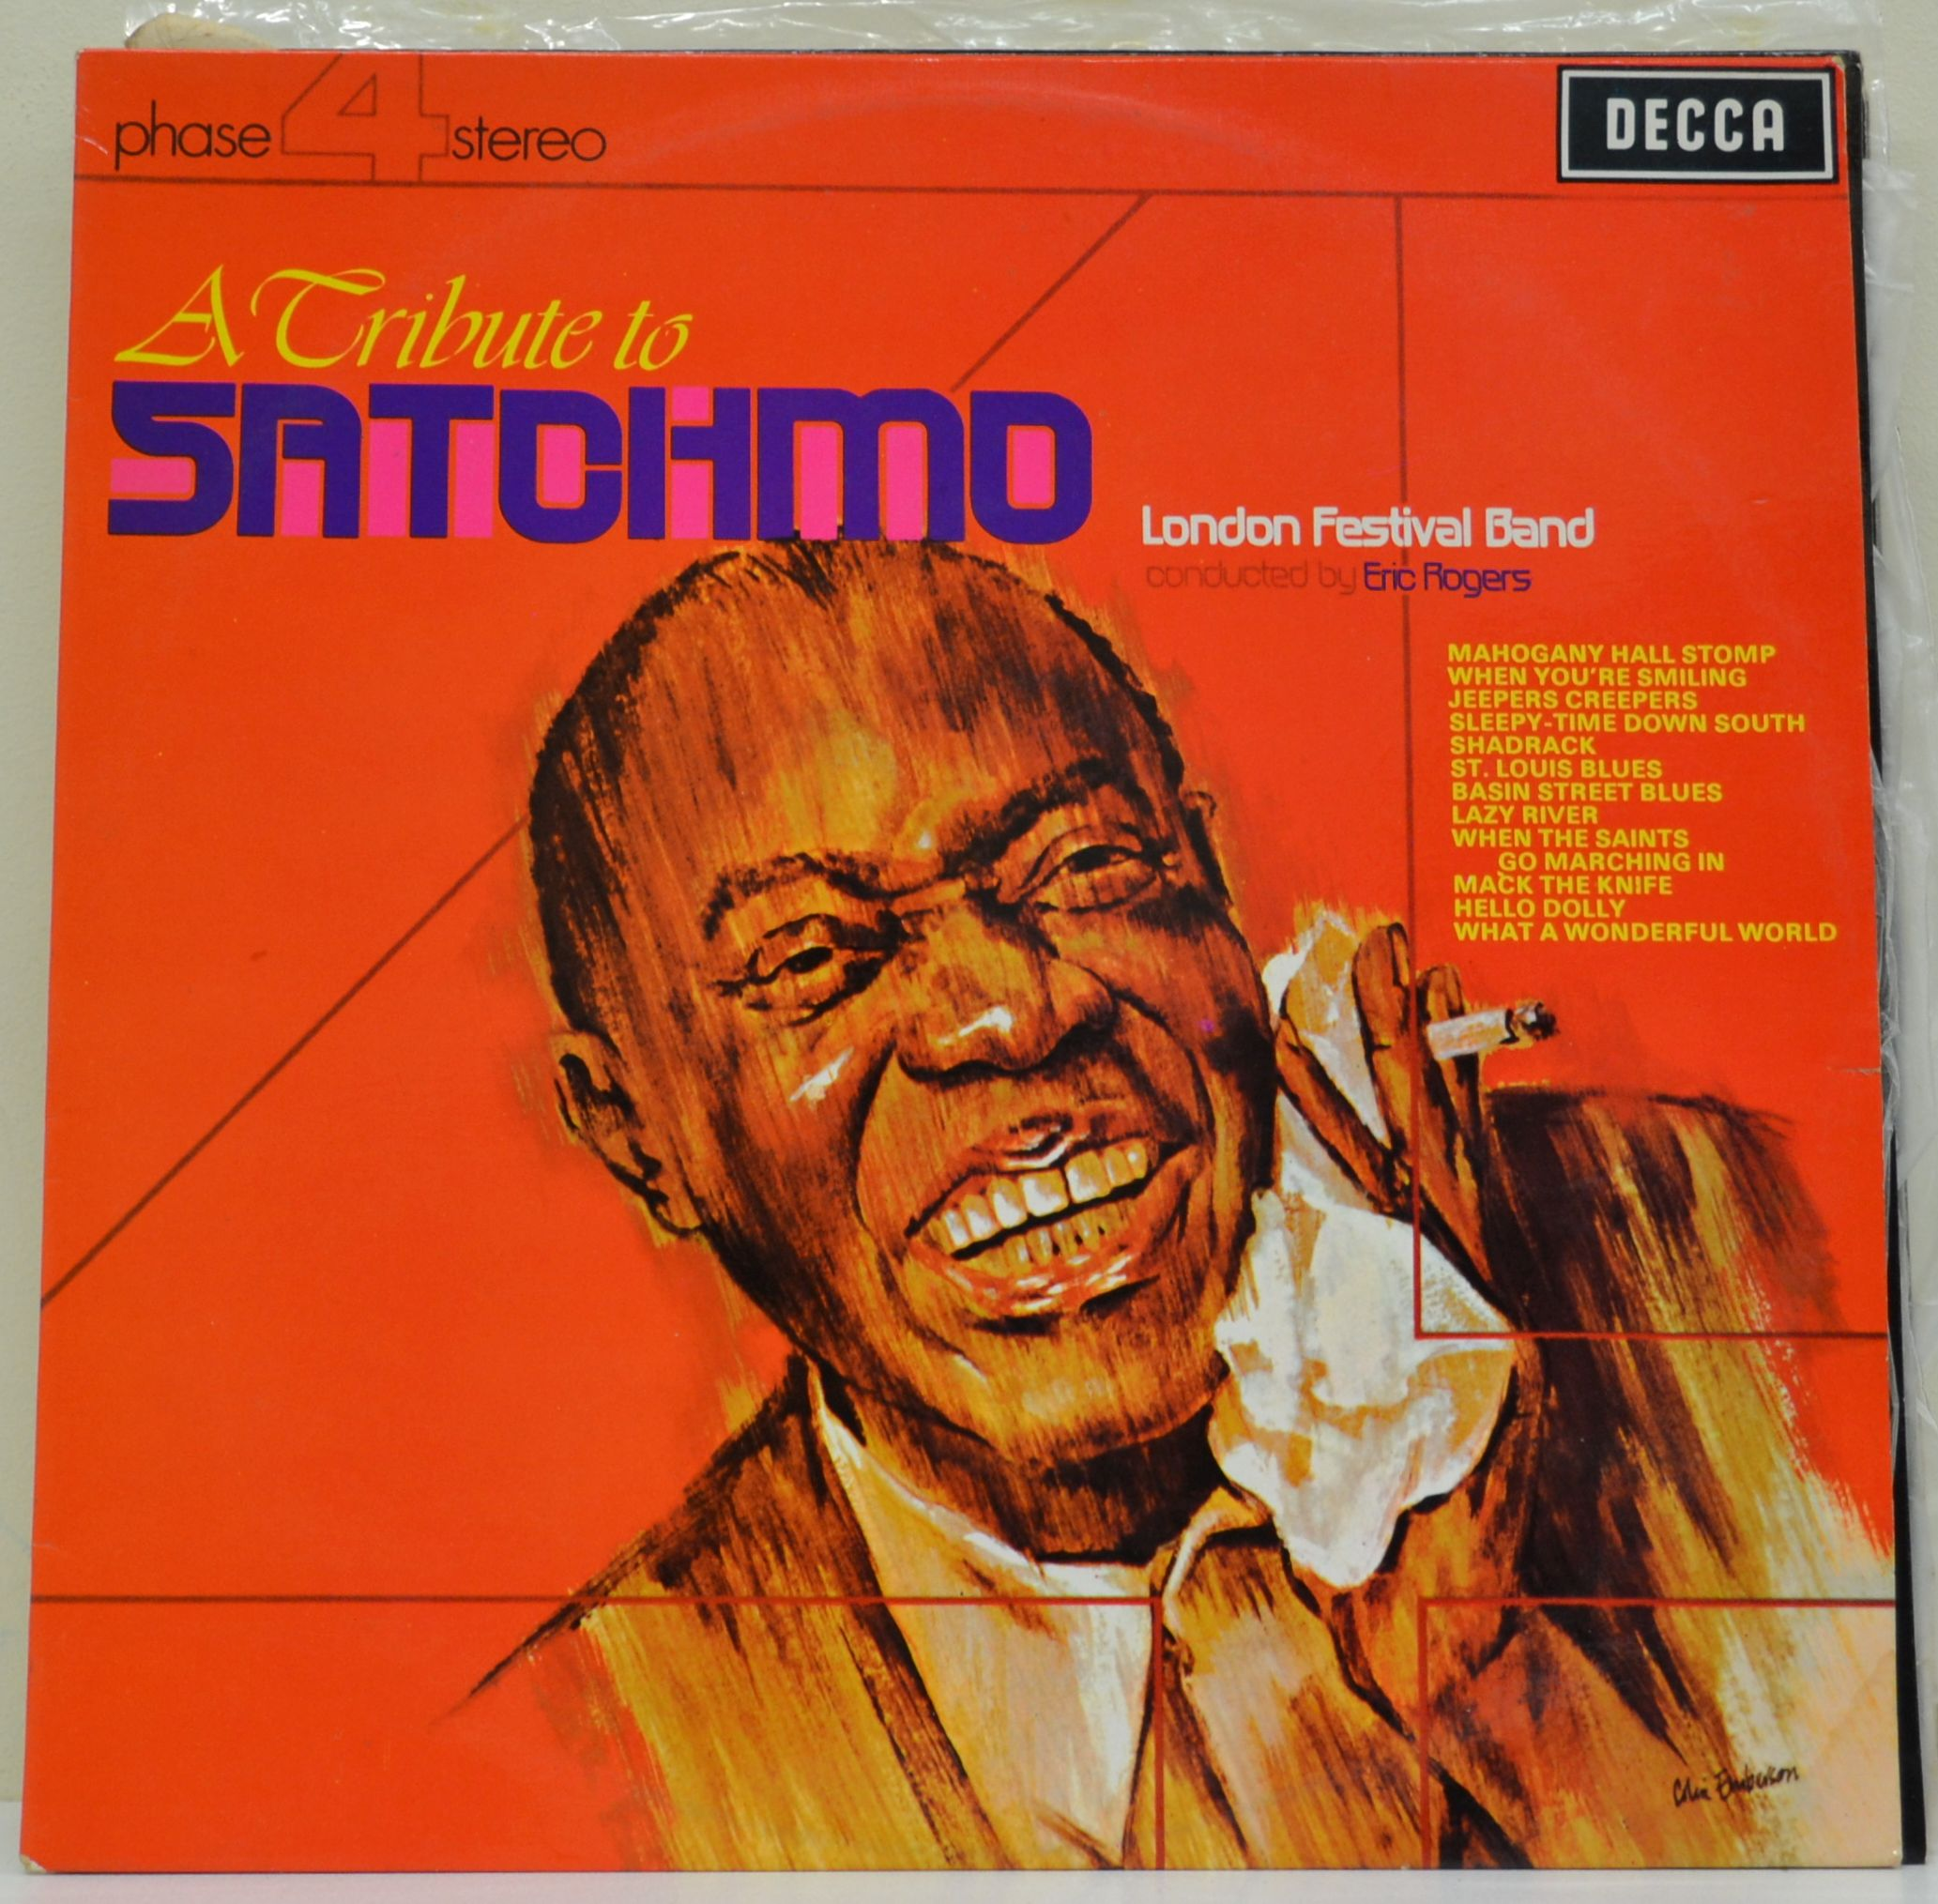 A Tribute to Satchmo